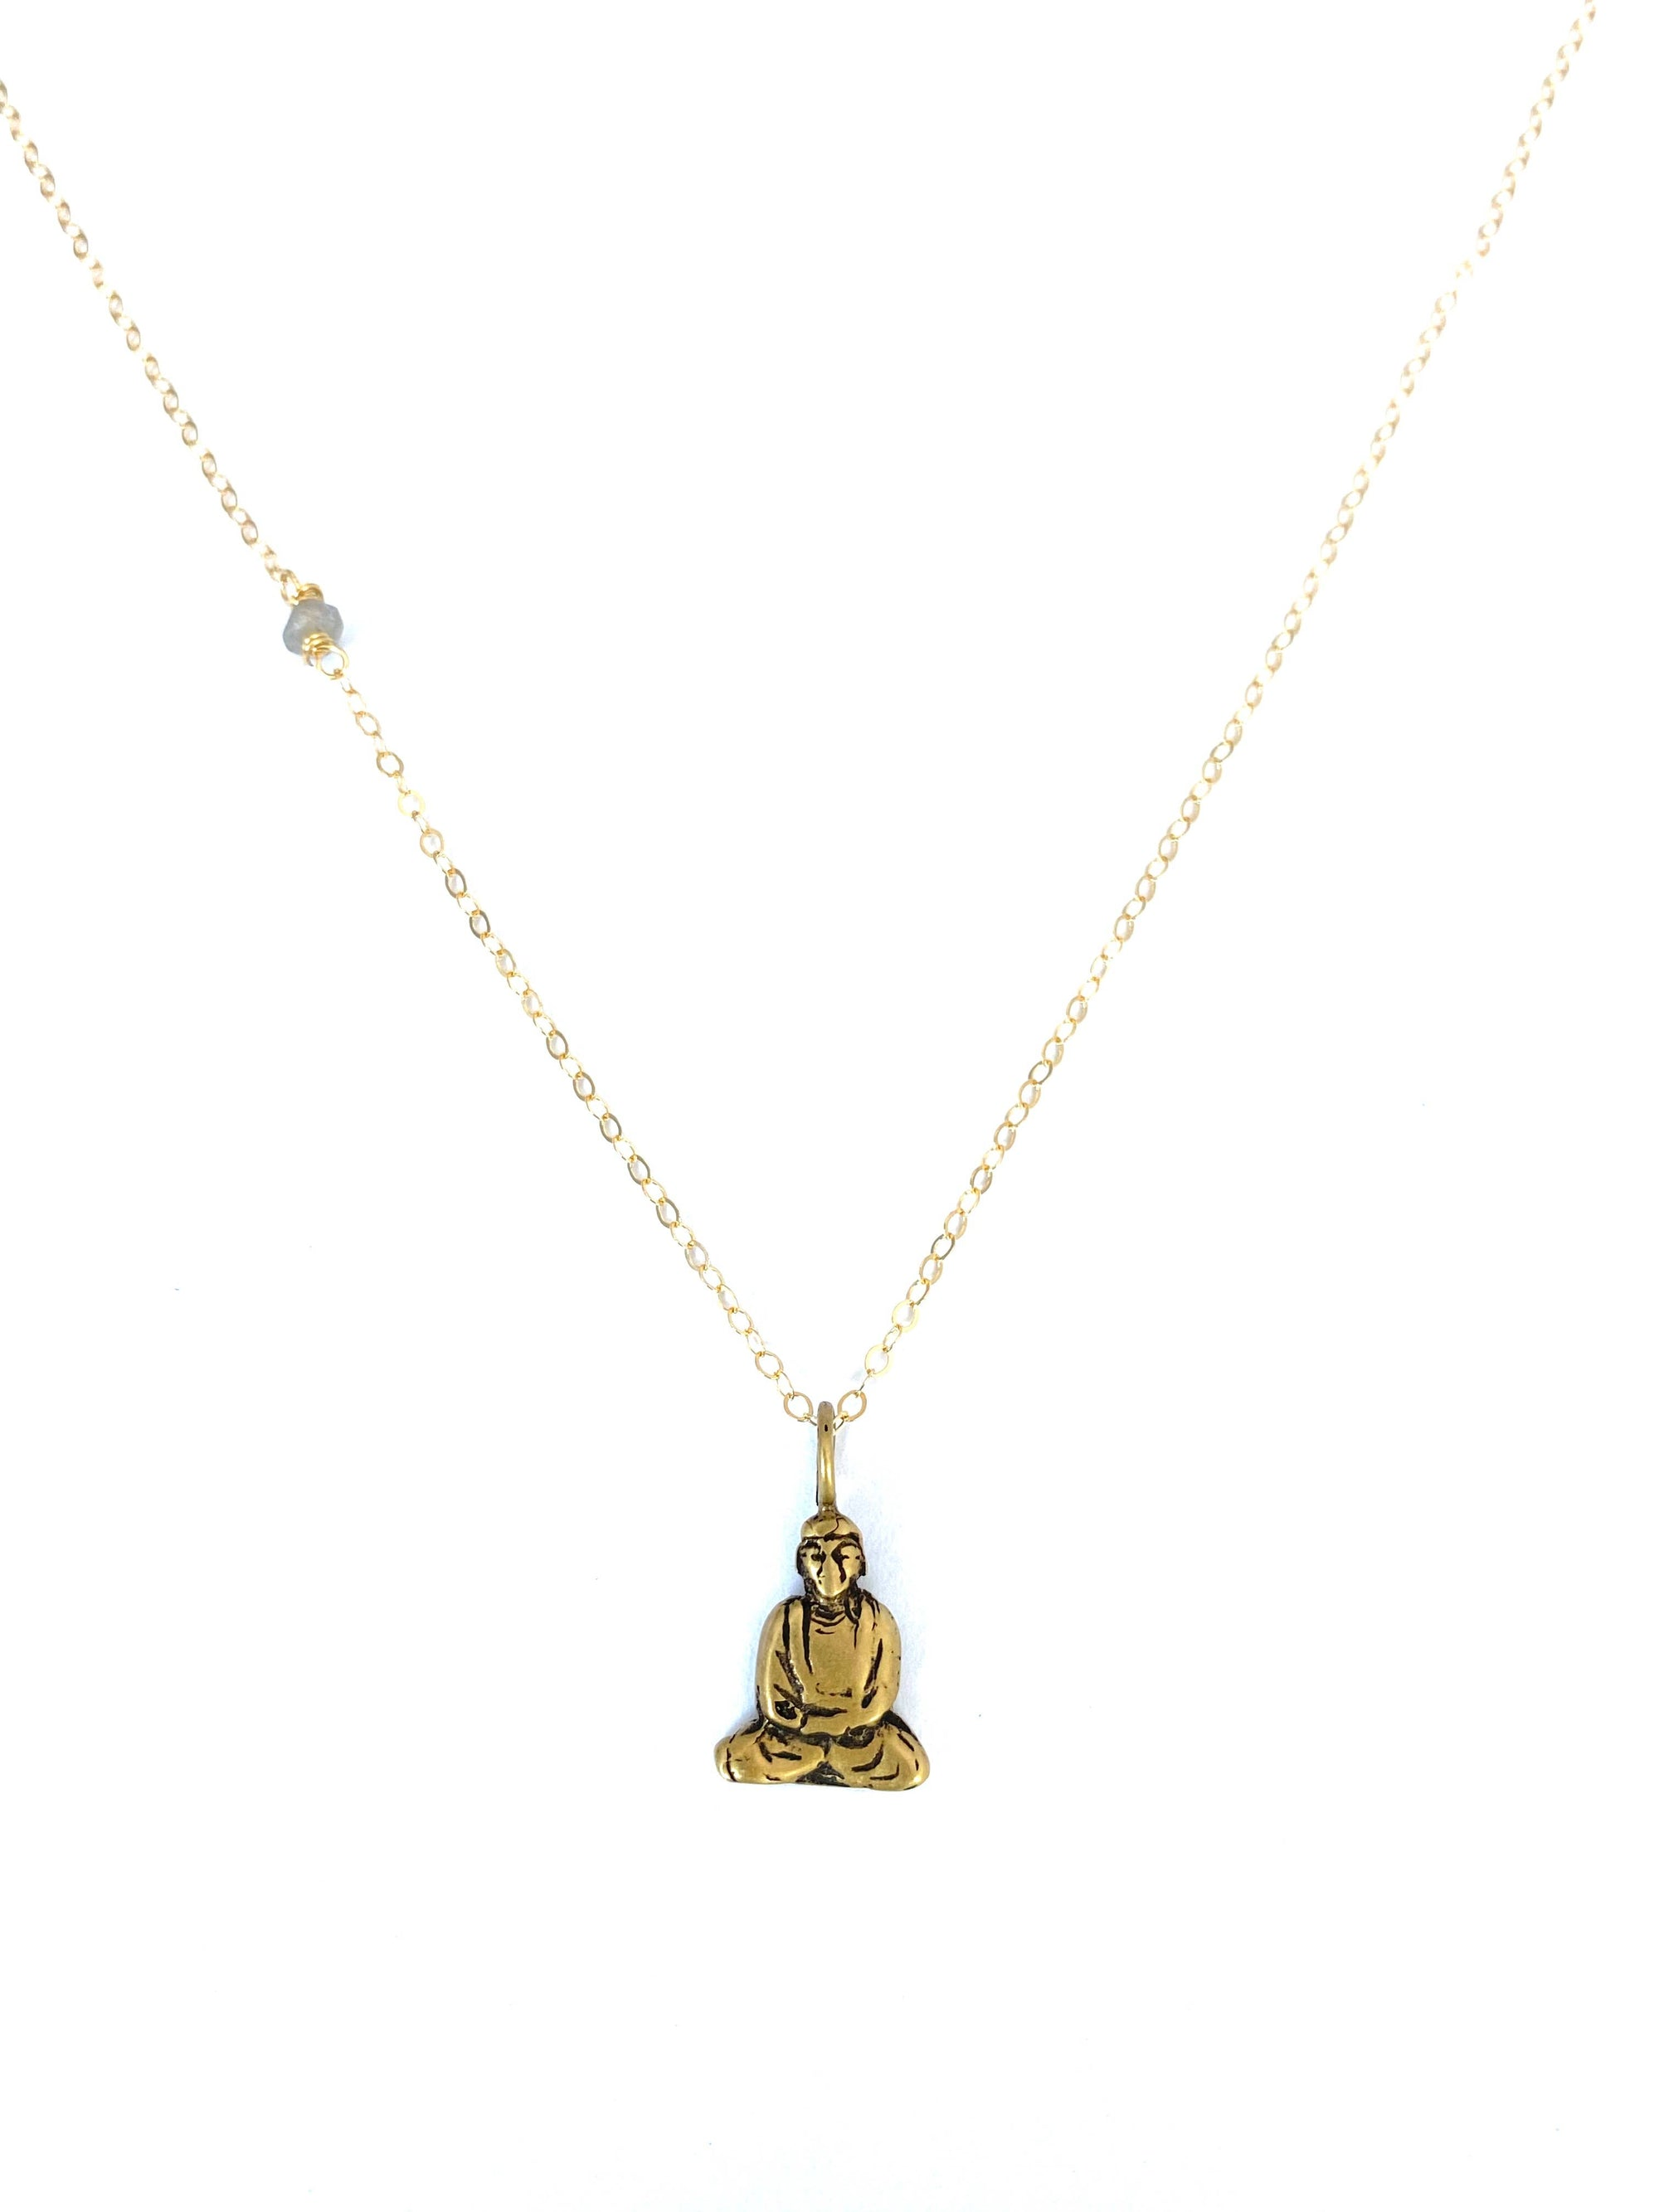 Bronze Buddha on Gold Fill Chain Necklace